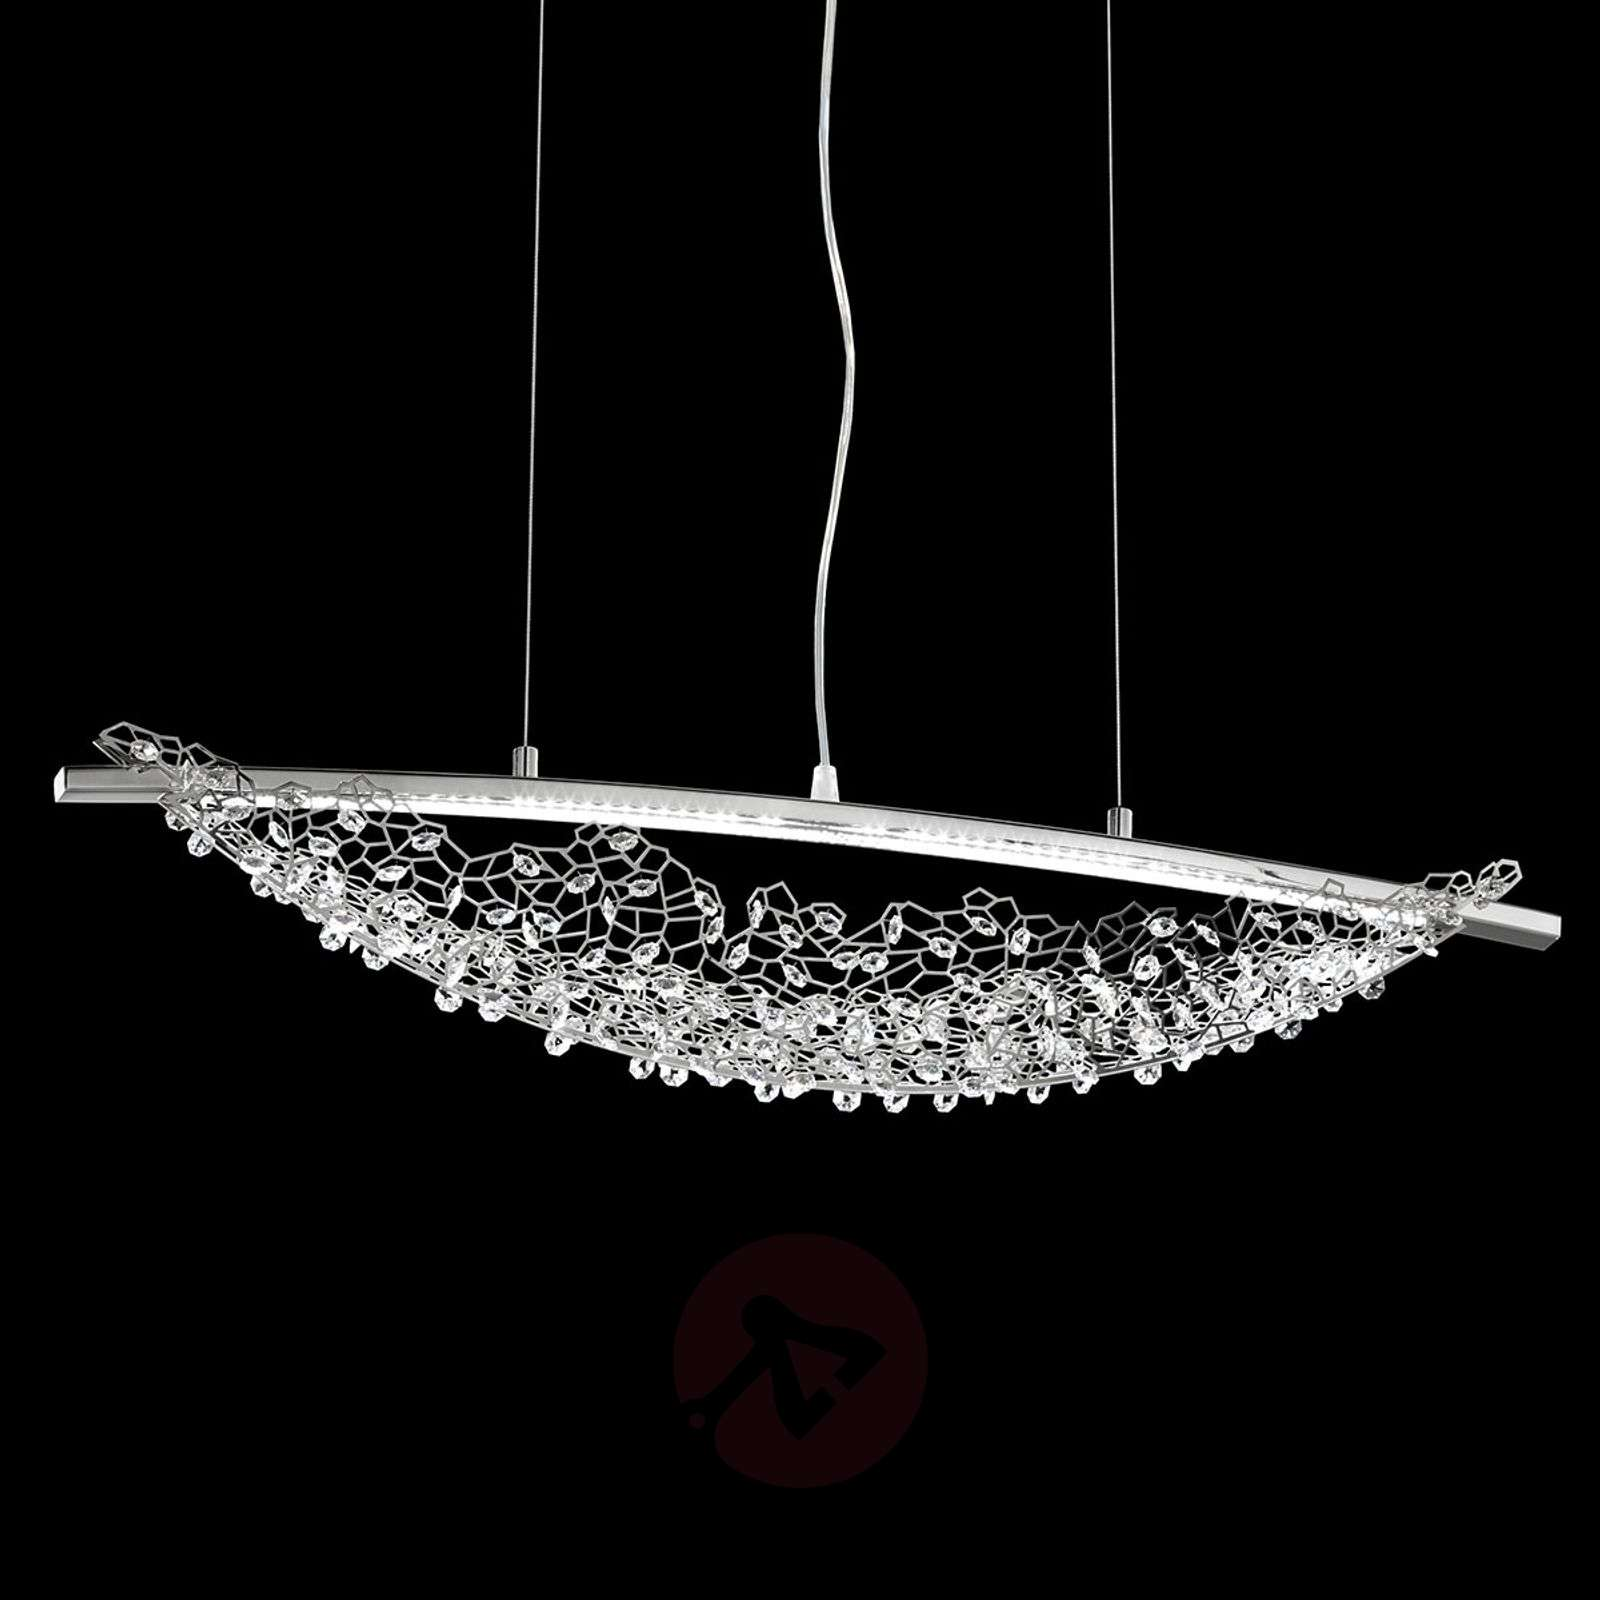 66a77b29104a7 Amaca LED hanging light with Swarovski crystals